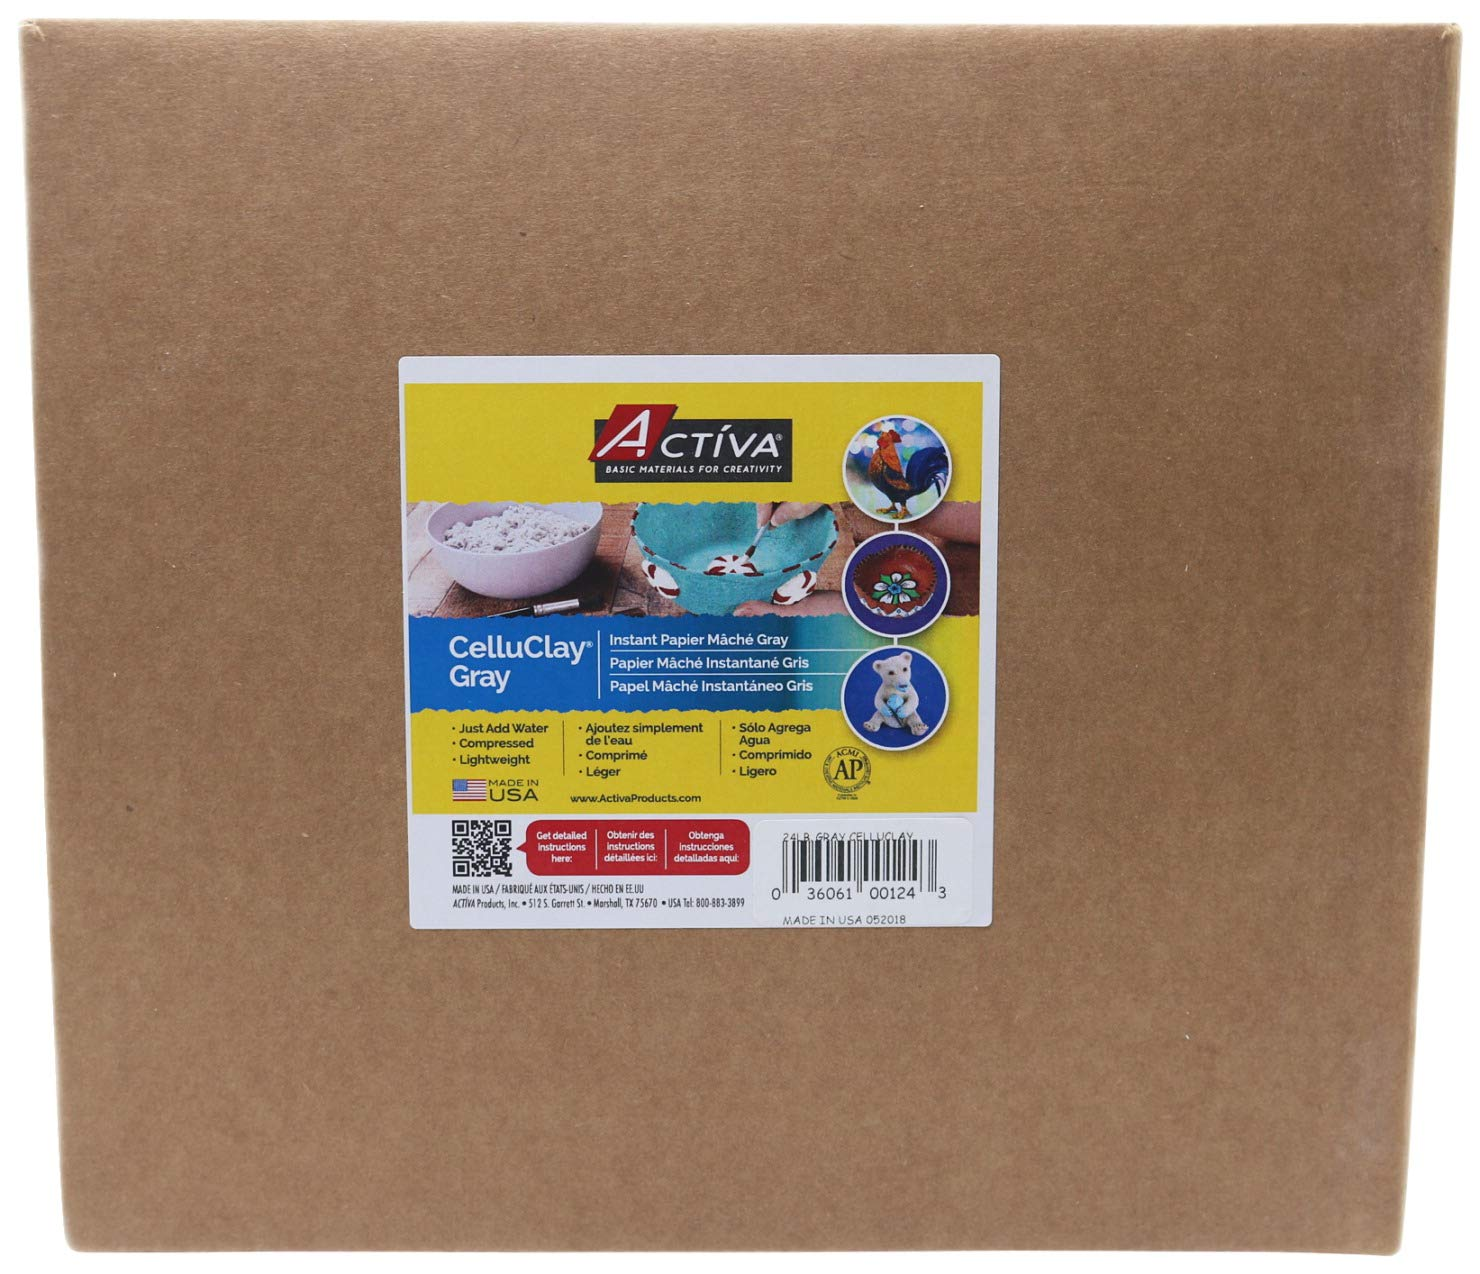 Activa Celluclay Instant Papier-Mache - 24 lbs. - Gray